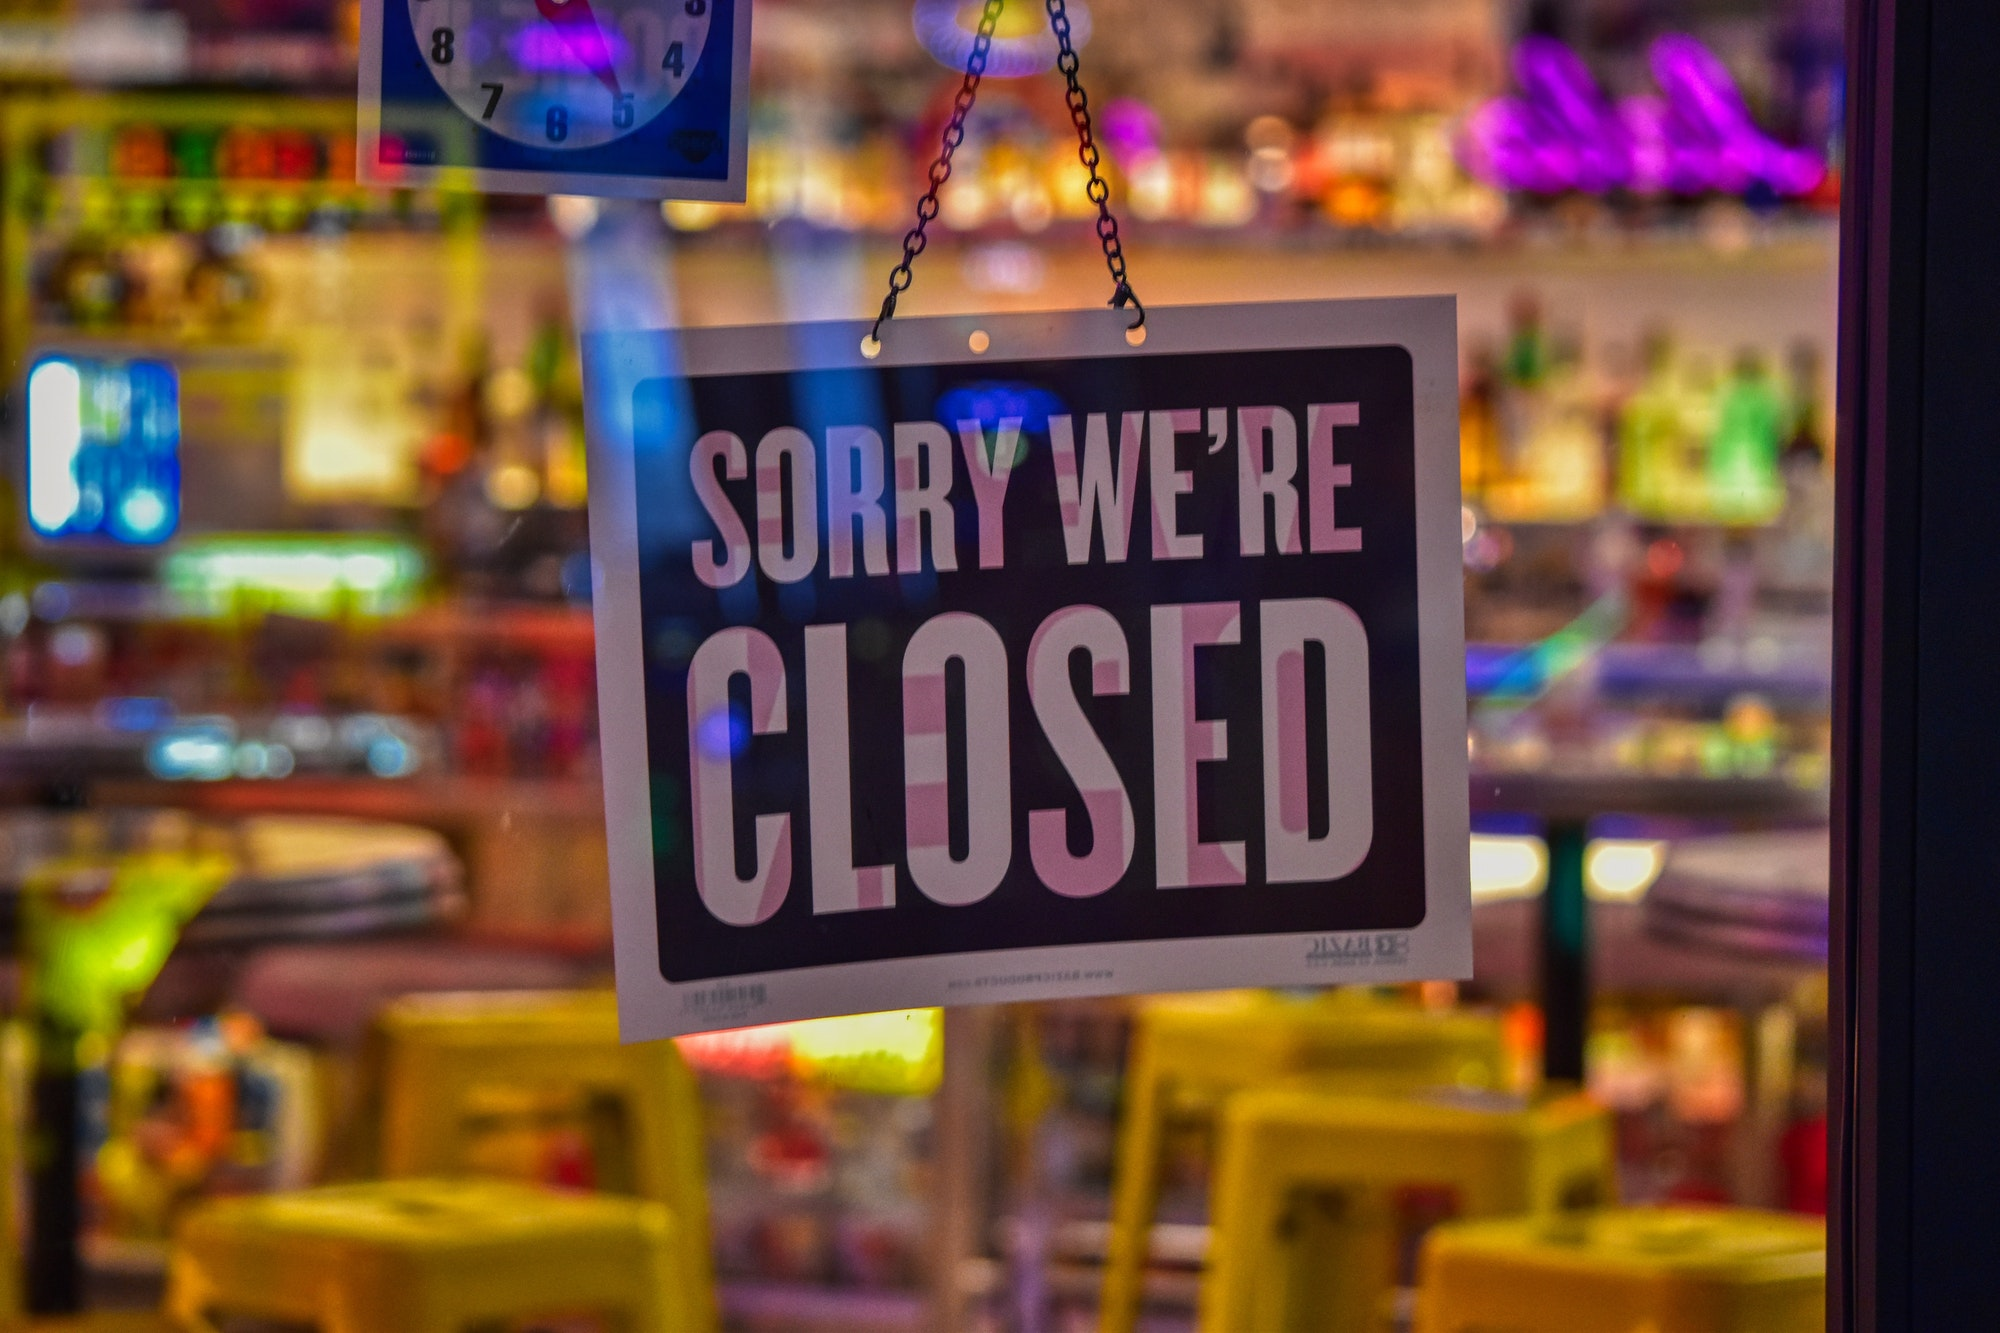 Sorry we're closed. Small business closed during coronavirus pandemic COVID-19 business continuity